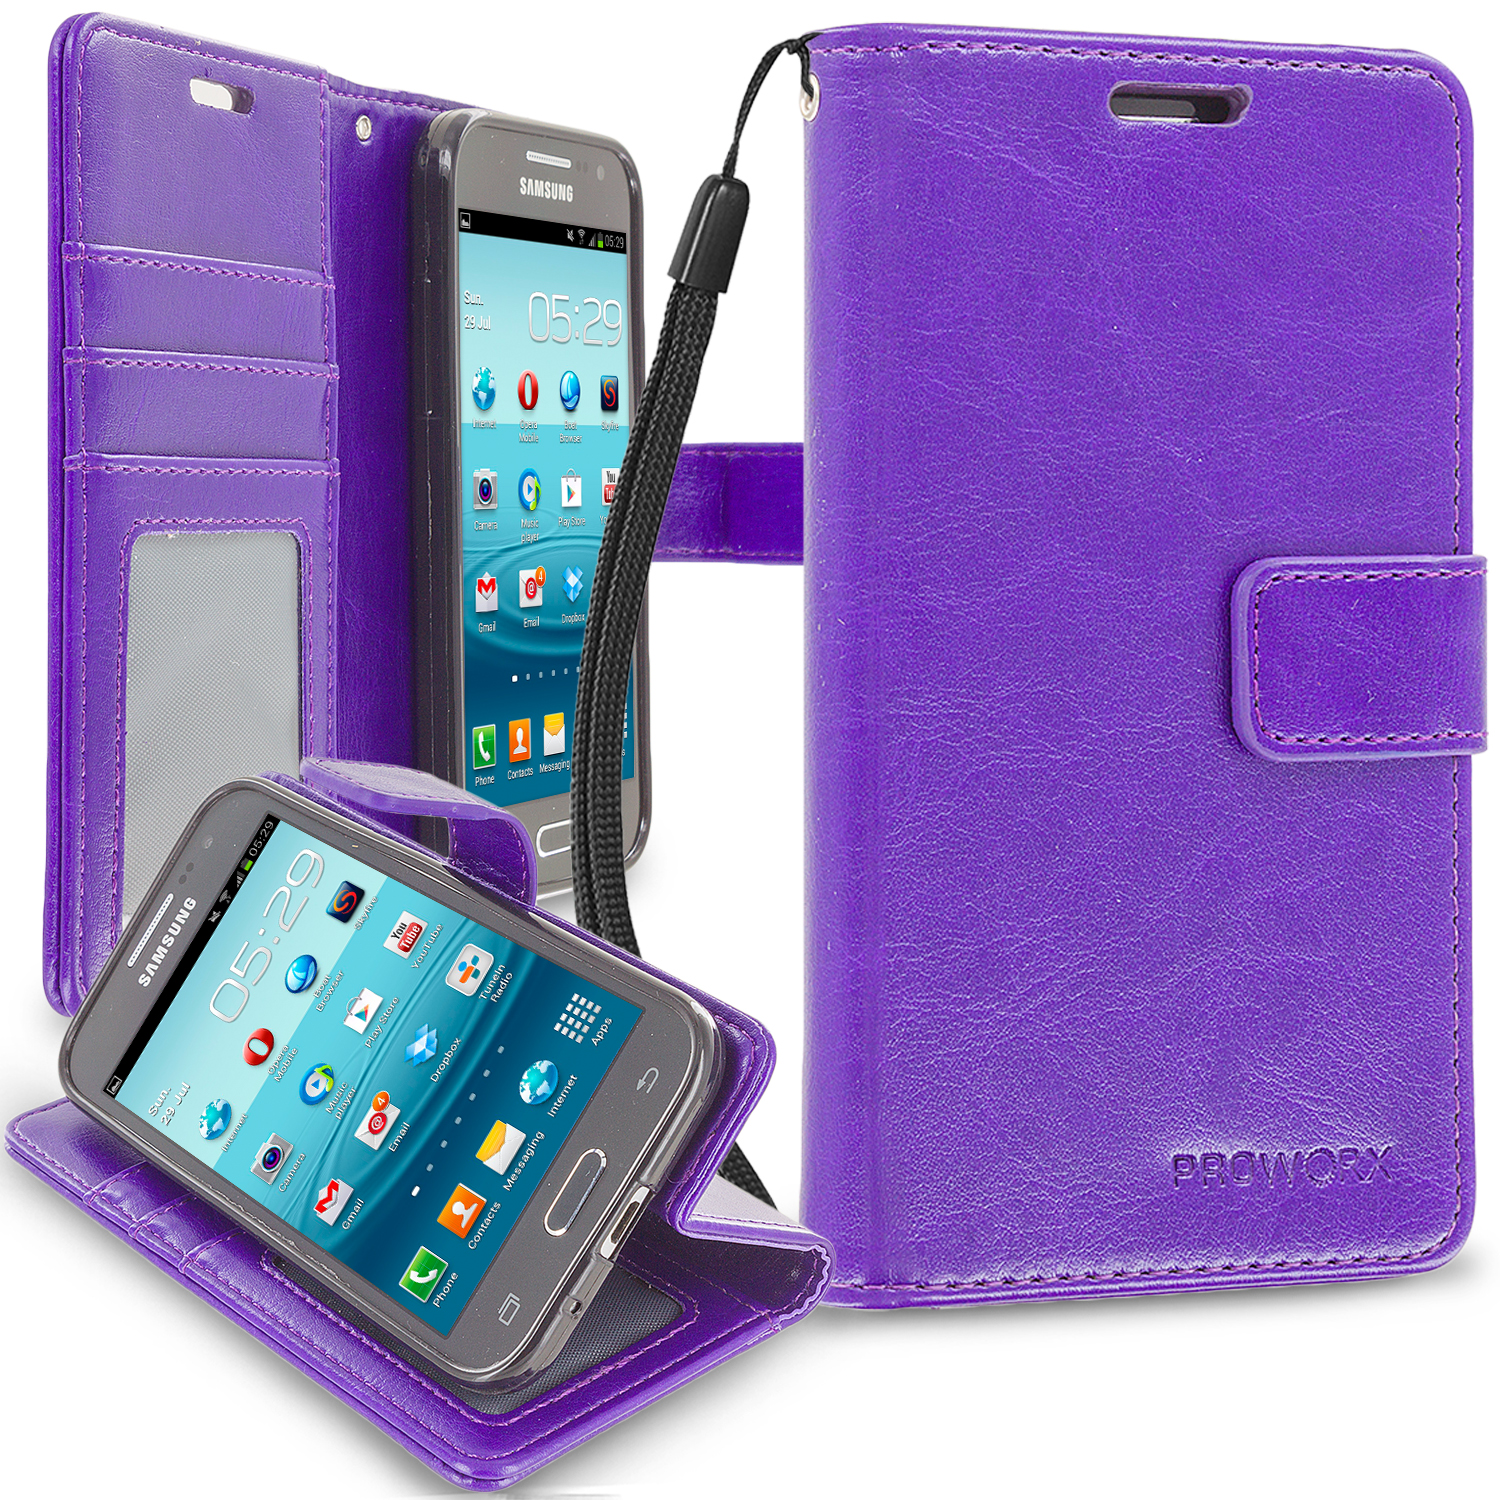 Samsung Galaxy Prevail LTE Core Prime G360P Purple ProWorx Wallet Case Luxury PU Leather Case Cover With Card Slots & Stand